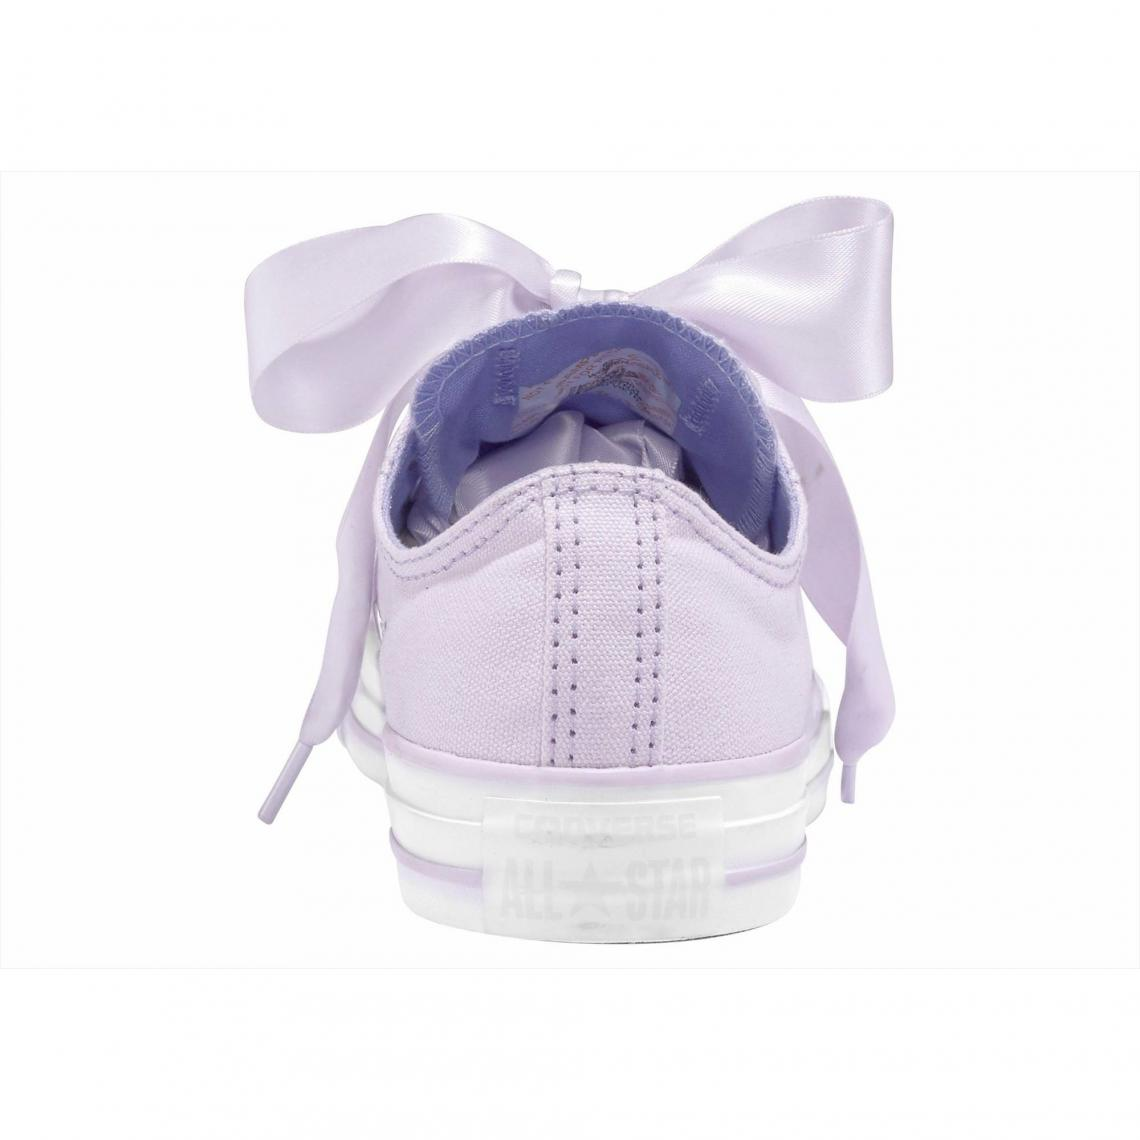 innovative design d466f c3d8c Baskets basses femme Converse Chuck Taylor All Star Ox Big Eyelet - Lilas  Converse